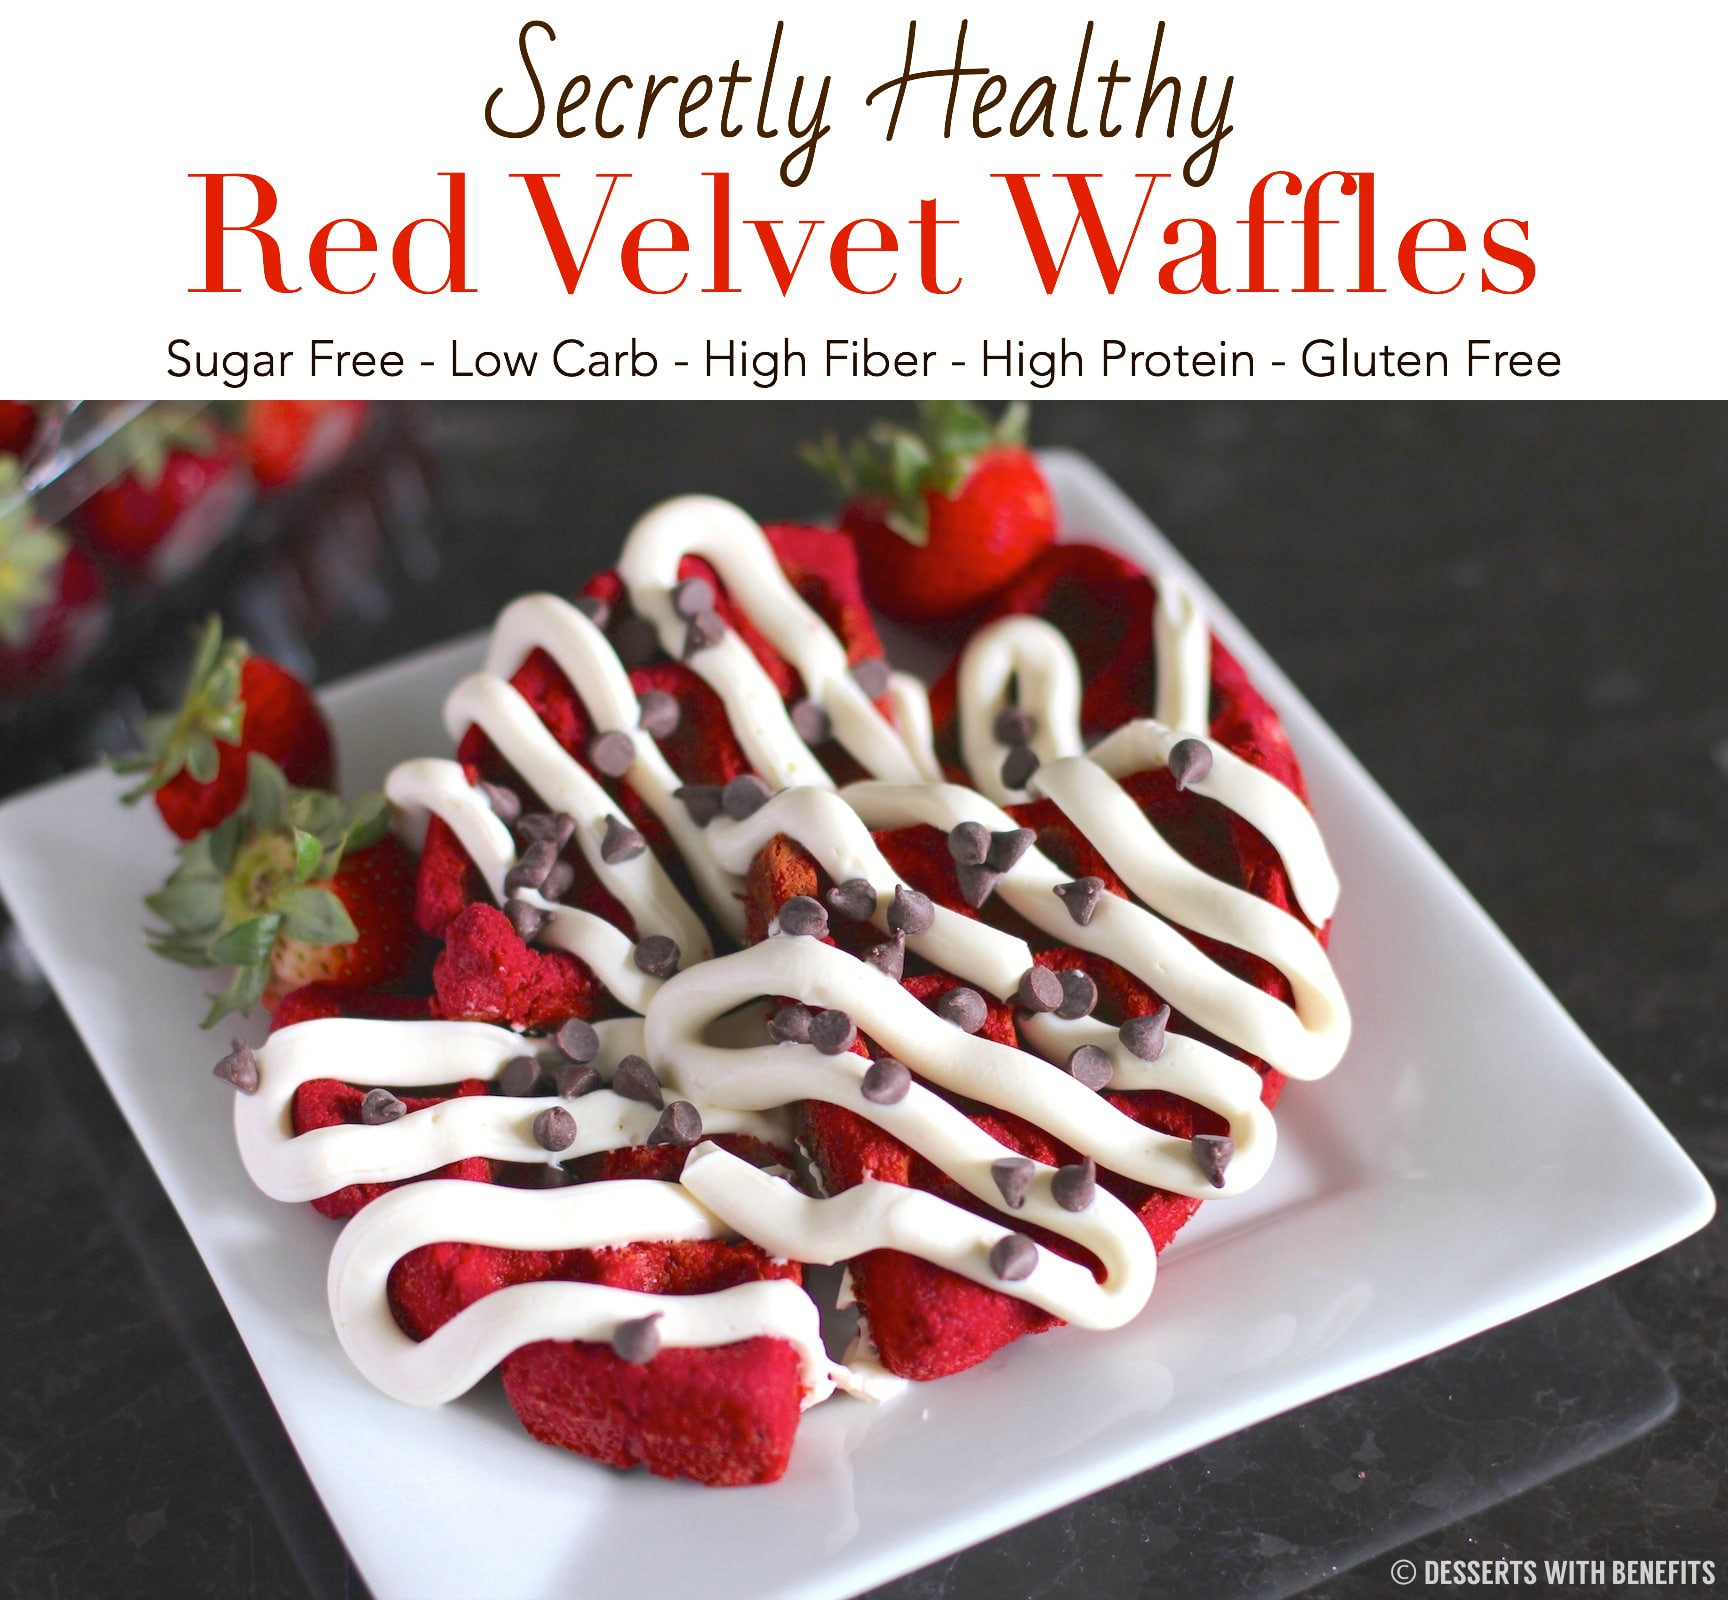 Healthy Low Carb Desserts  Desserts With Benefits Healthy Low Carb and Gluten Free